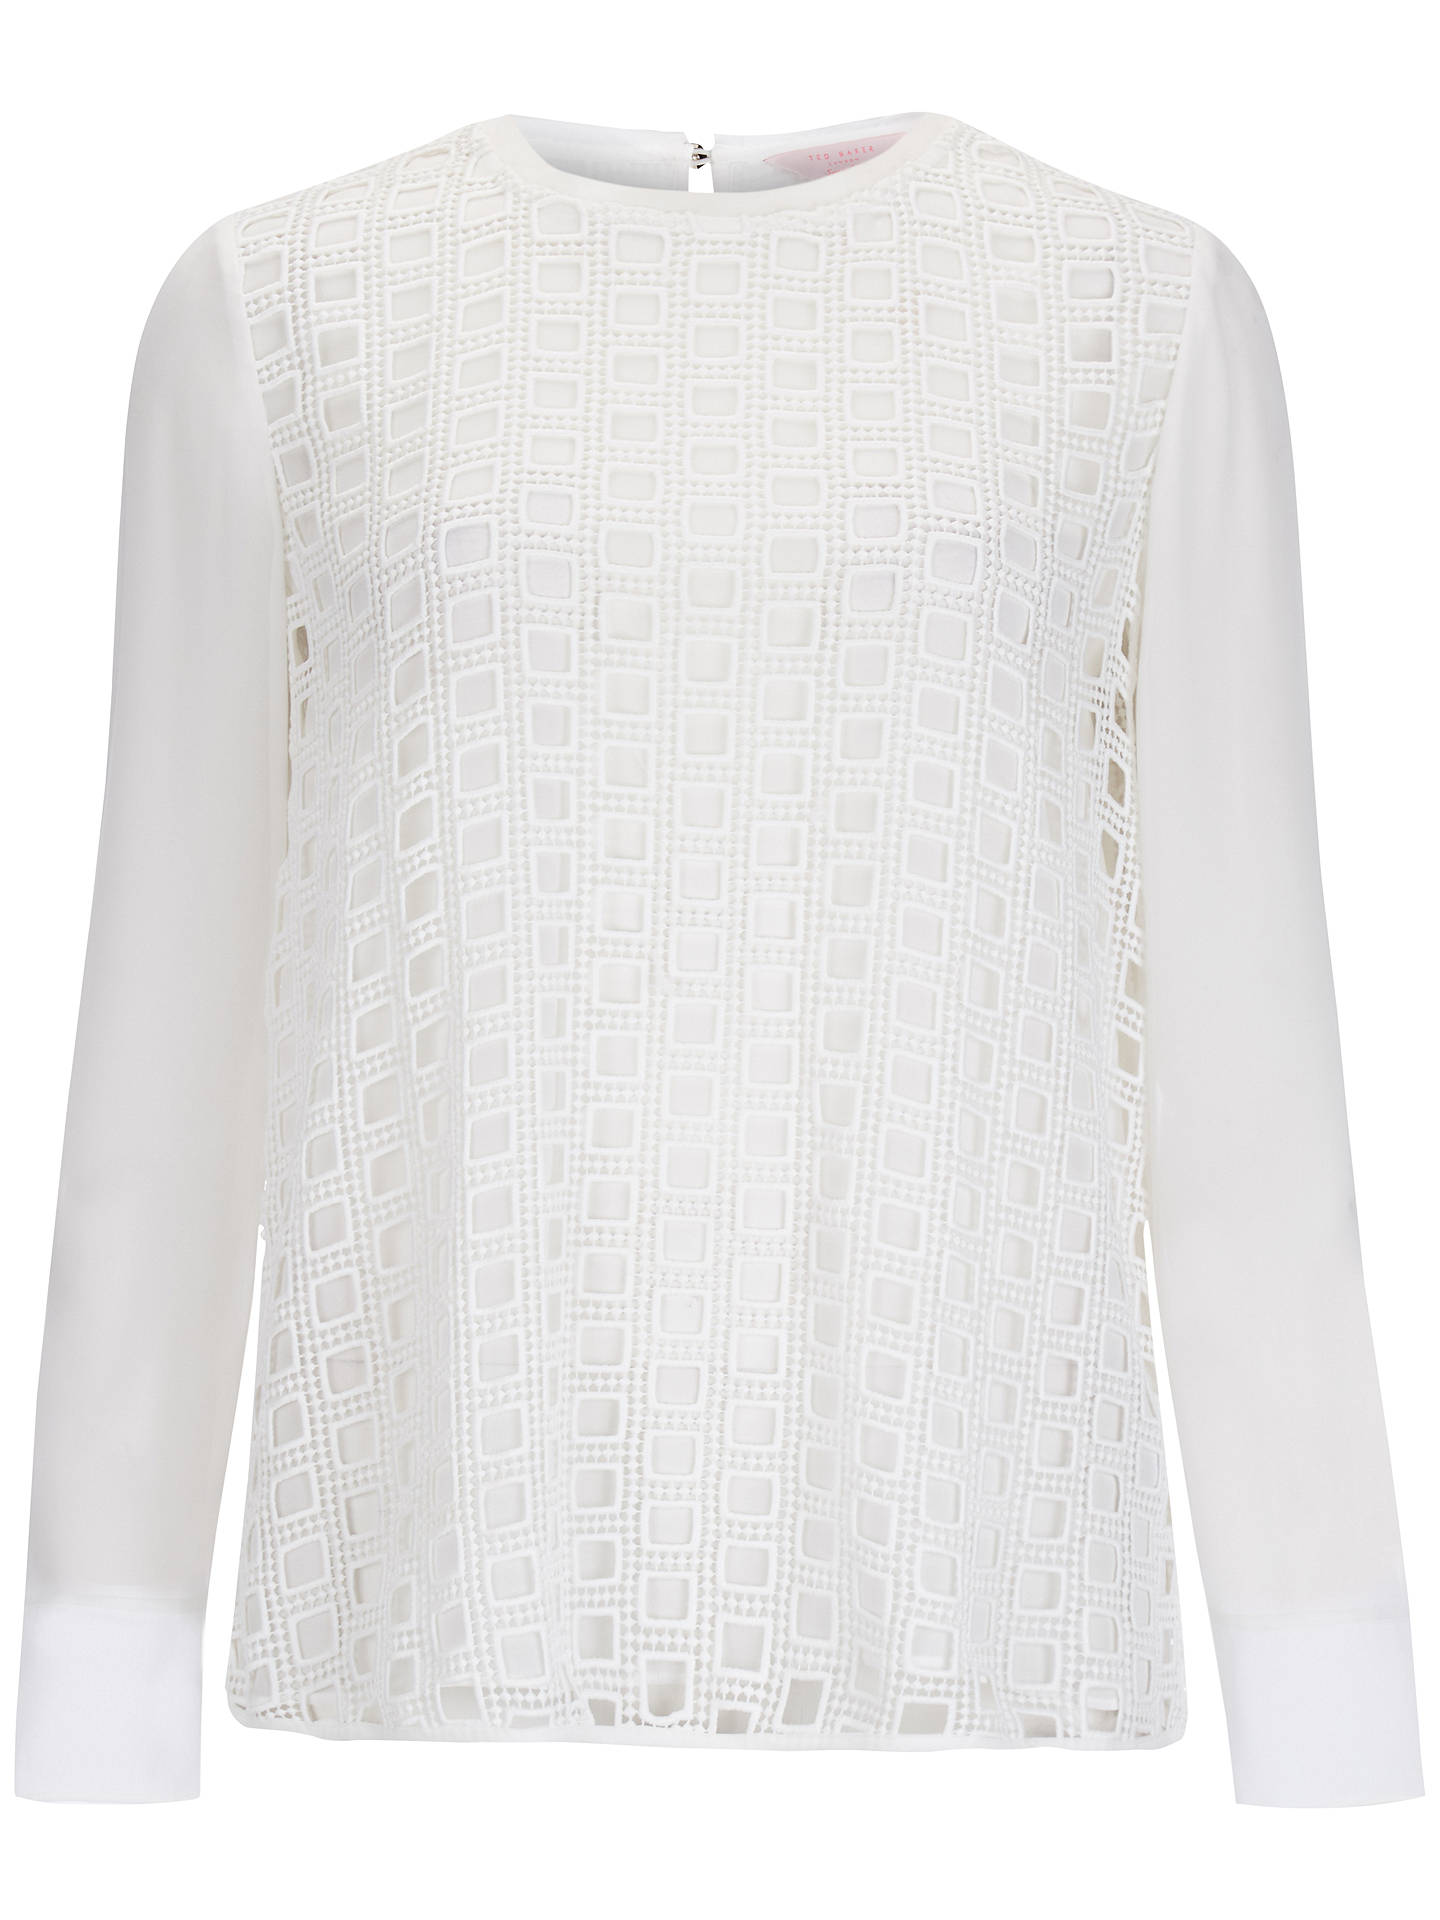 Buy Ted Baker Soreyaa Lace Overlay Top, Cream, 6 Online at johnlewis.com